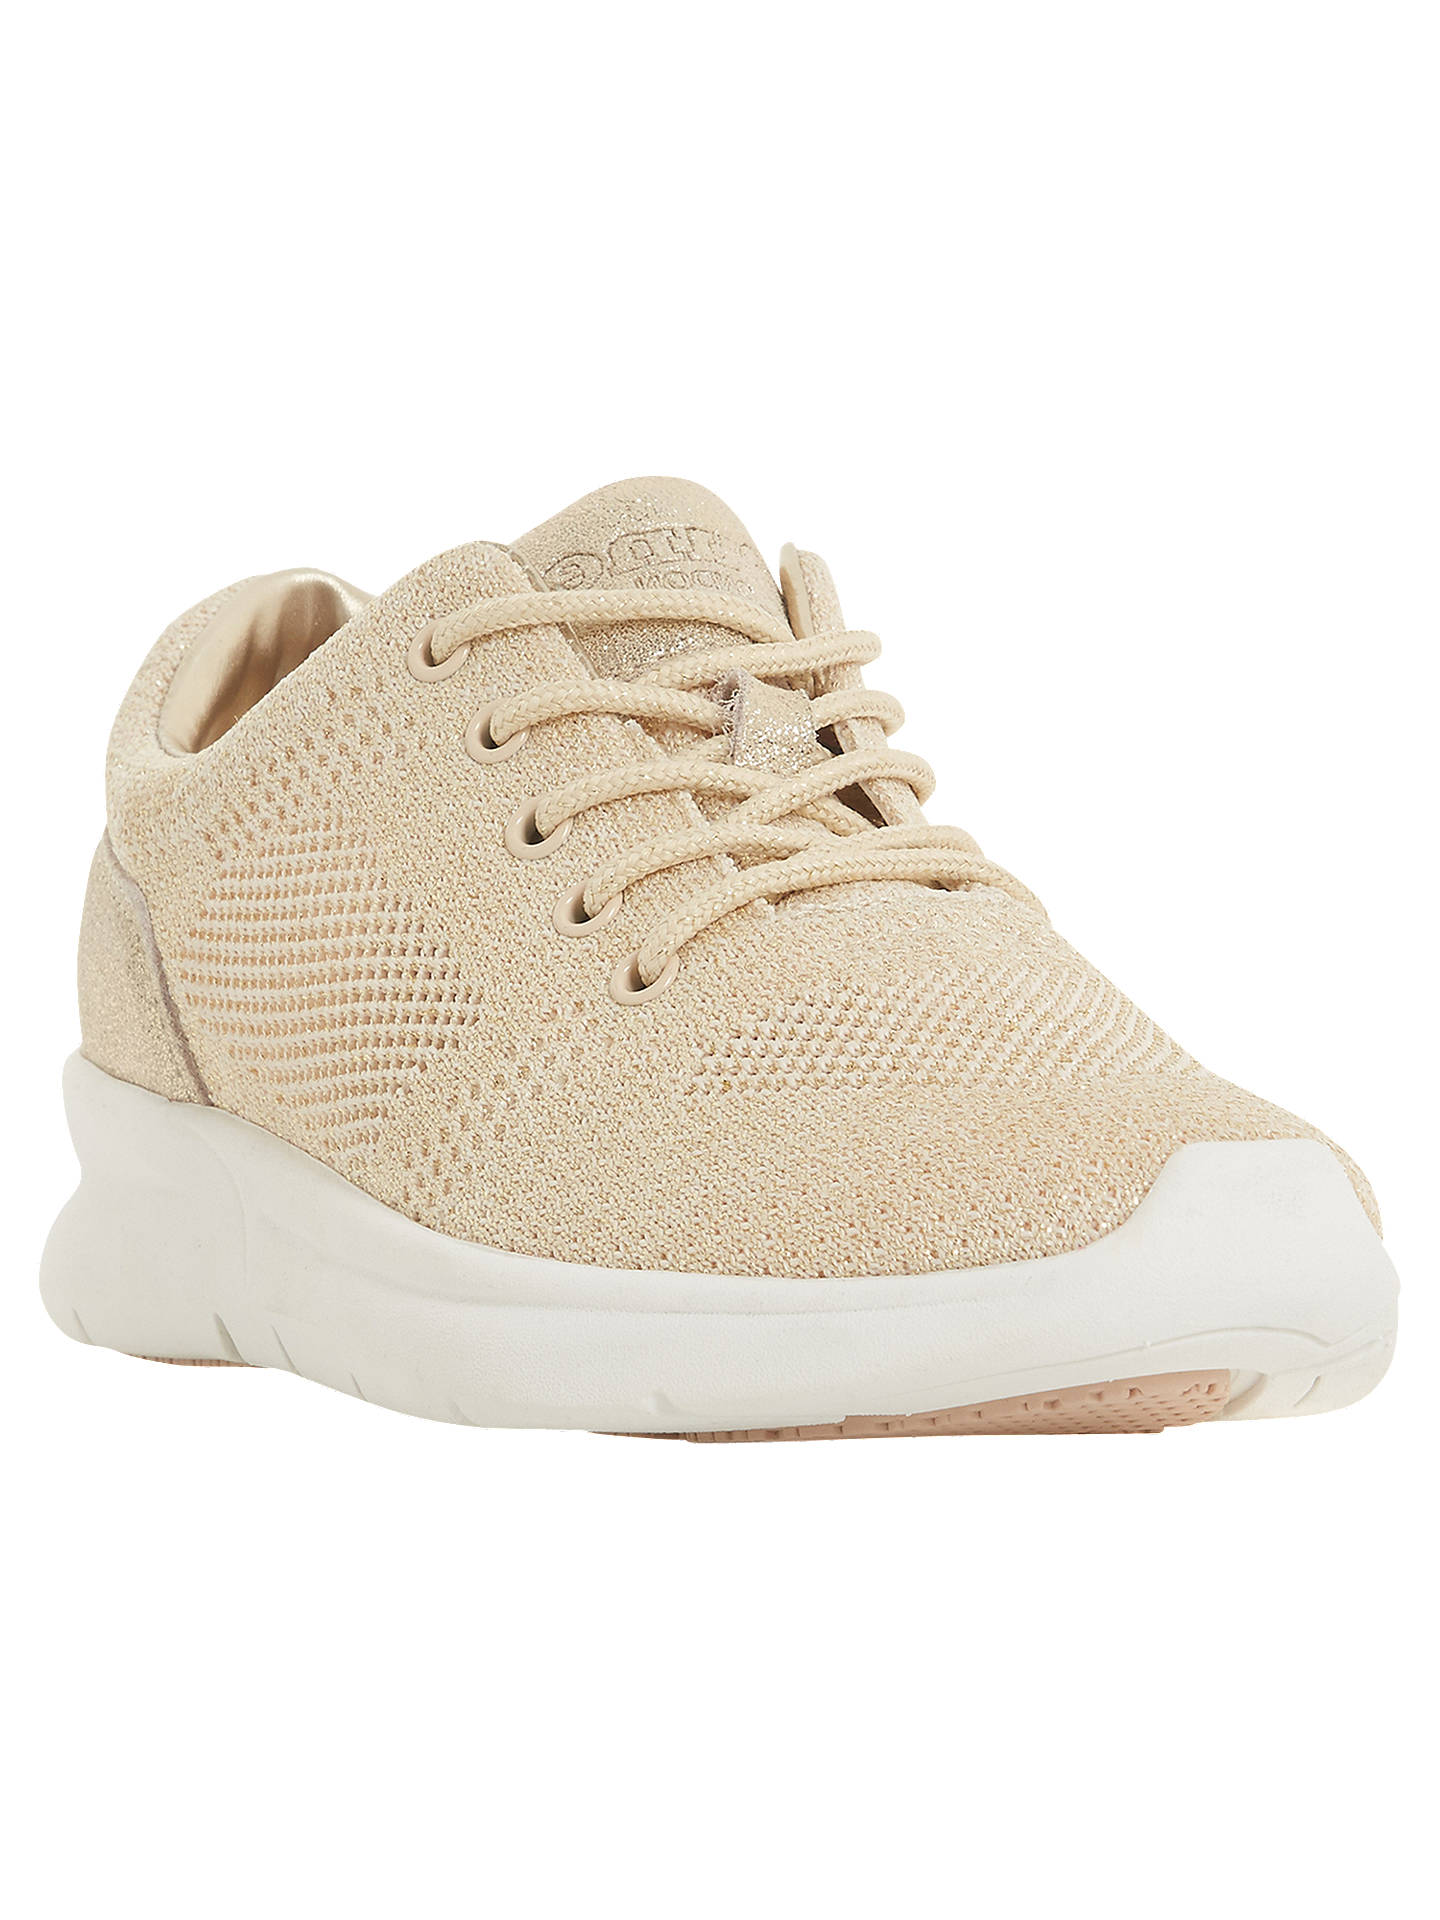 BuyDune Euphoric Lace Up Trainers, Pink, 3 Online at johnlewis.com